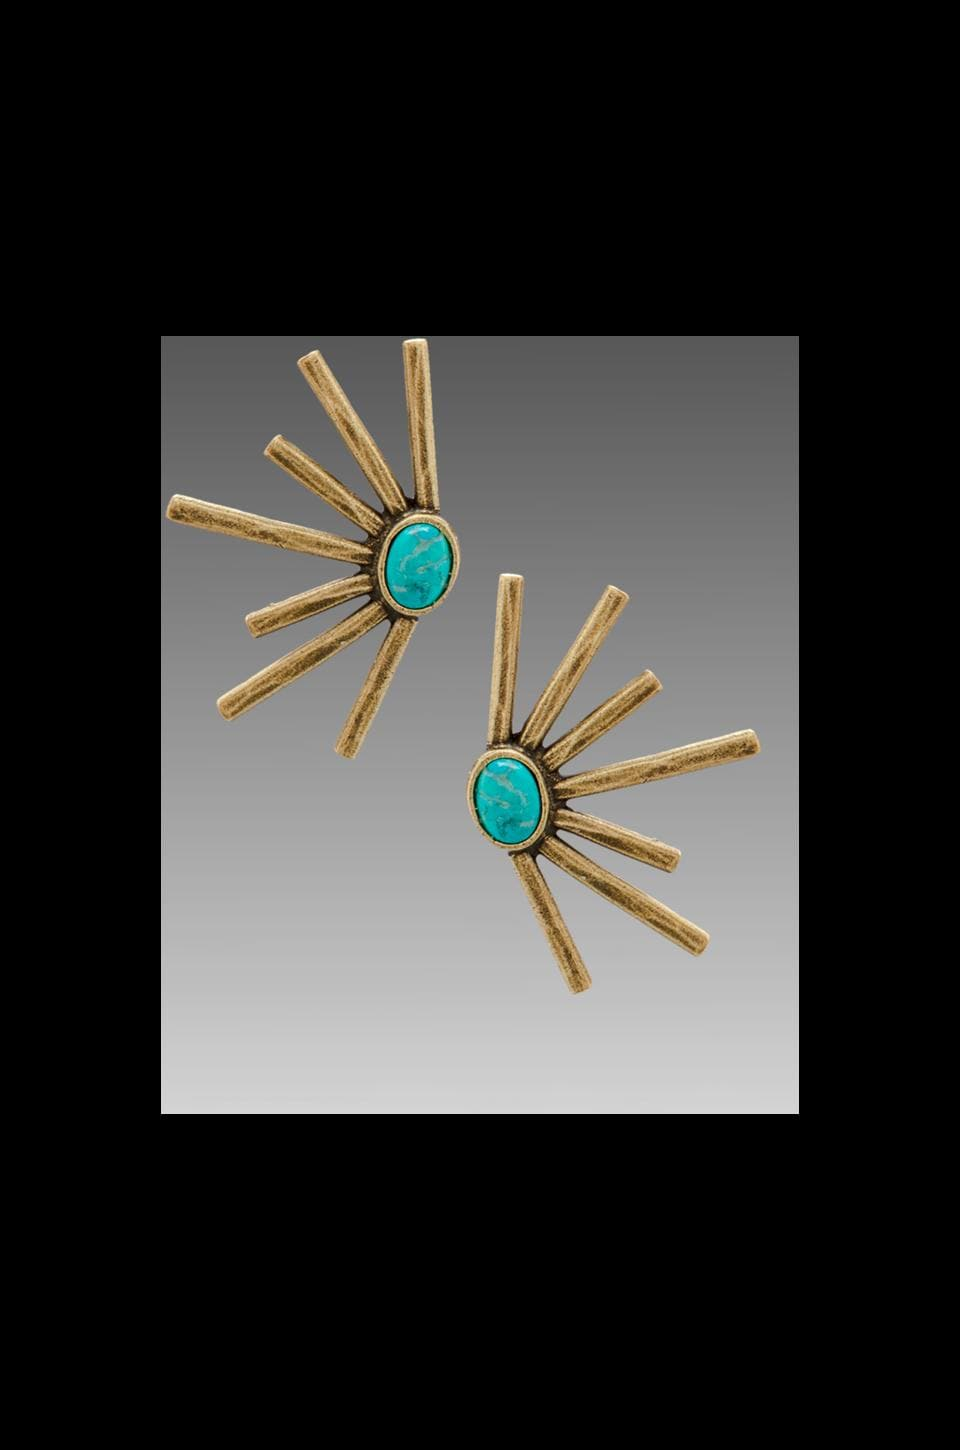 2 Bandits Sunshine Daydream Earrings in Antique Brass/Blue Turquoise